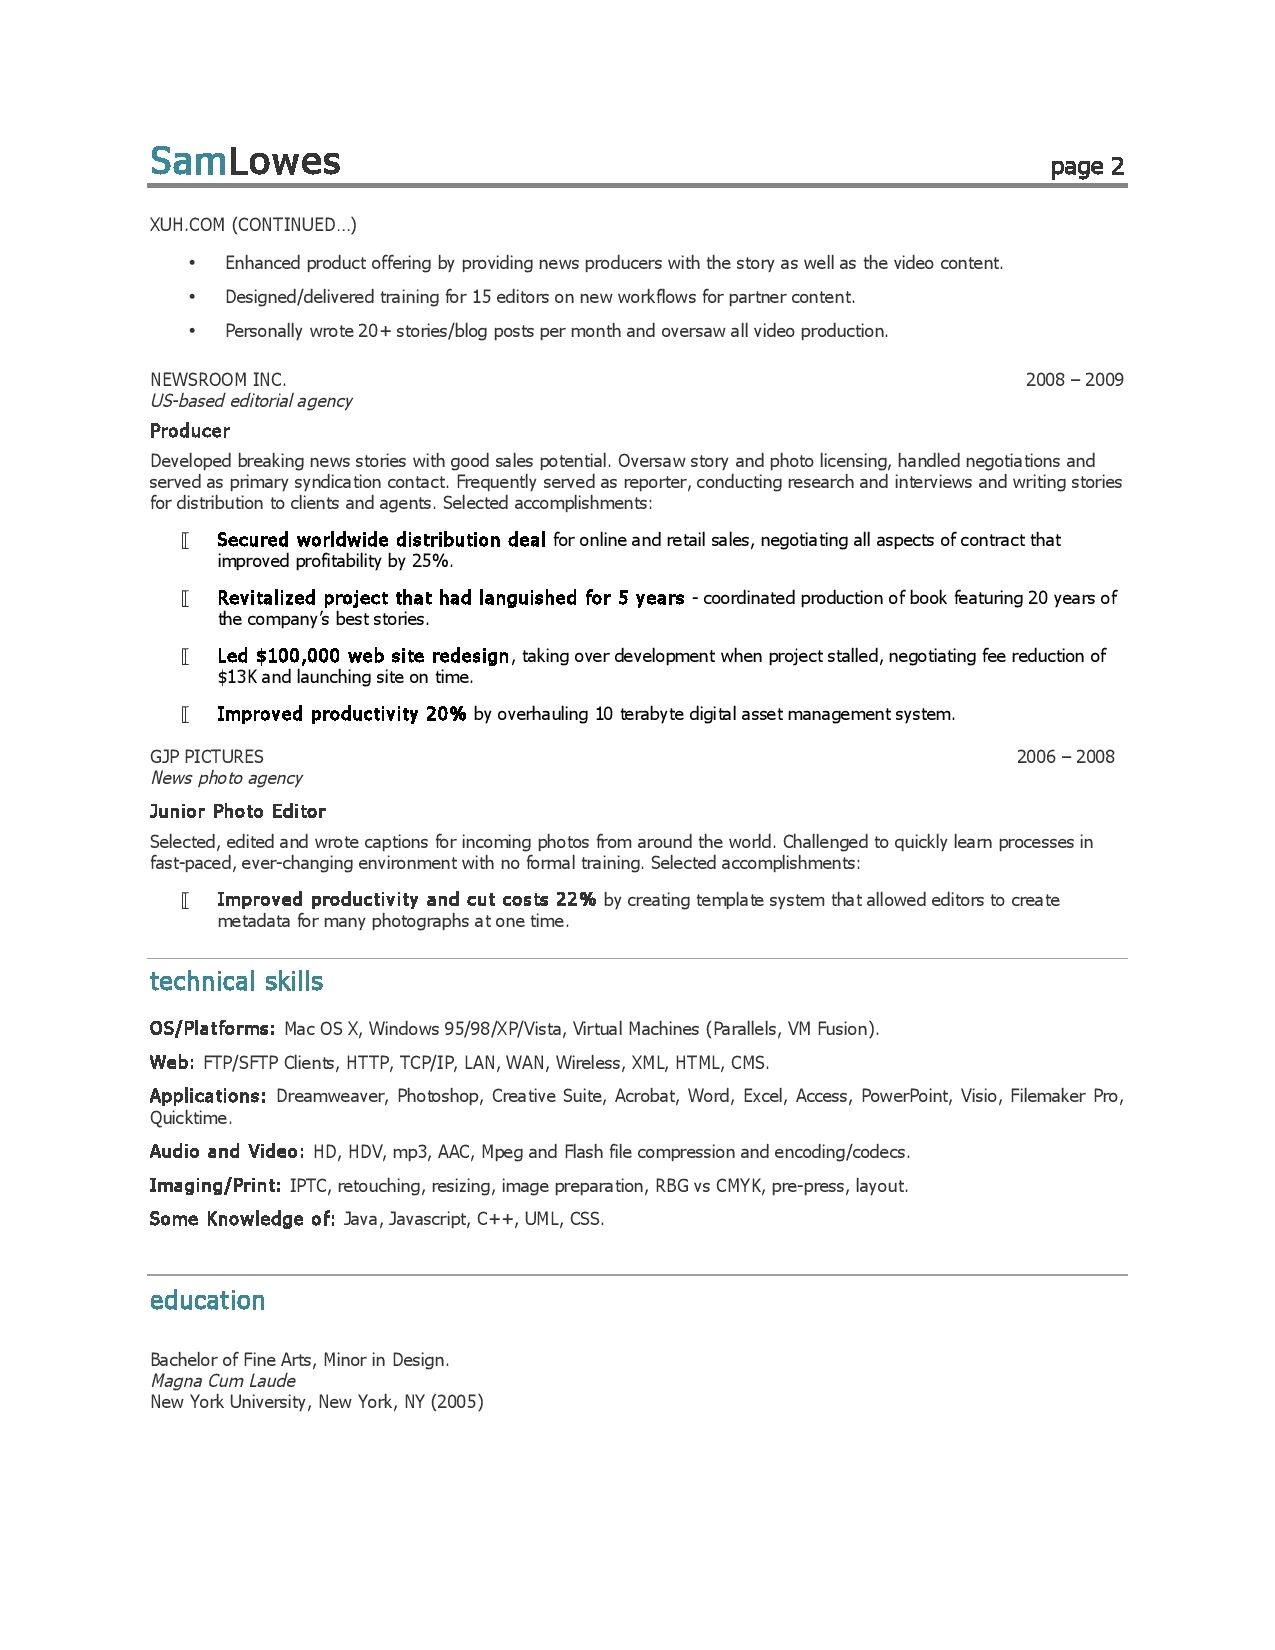 Copyable Resume Templates Email Marketing Resume Sample Www Sanitizeuv Com